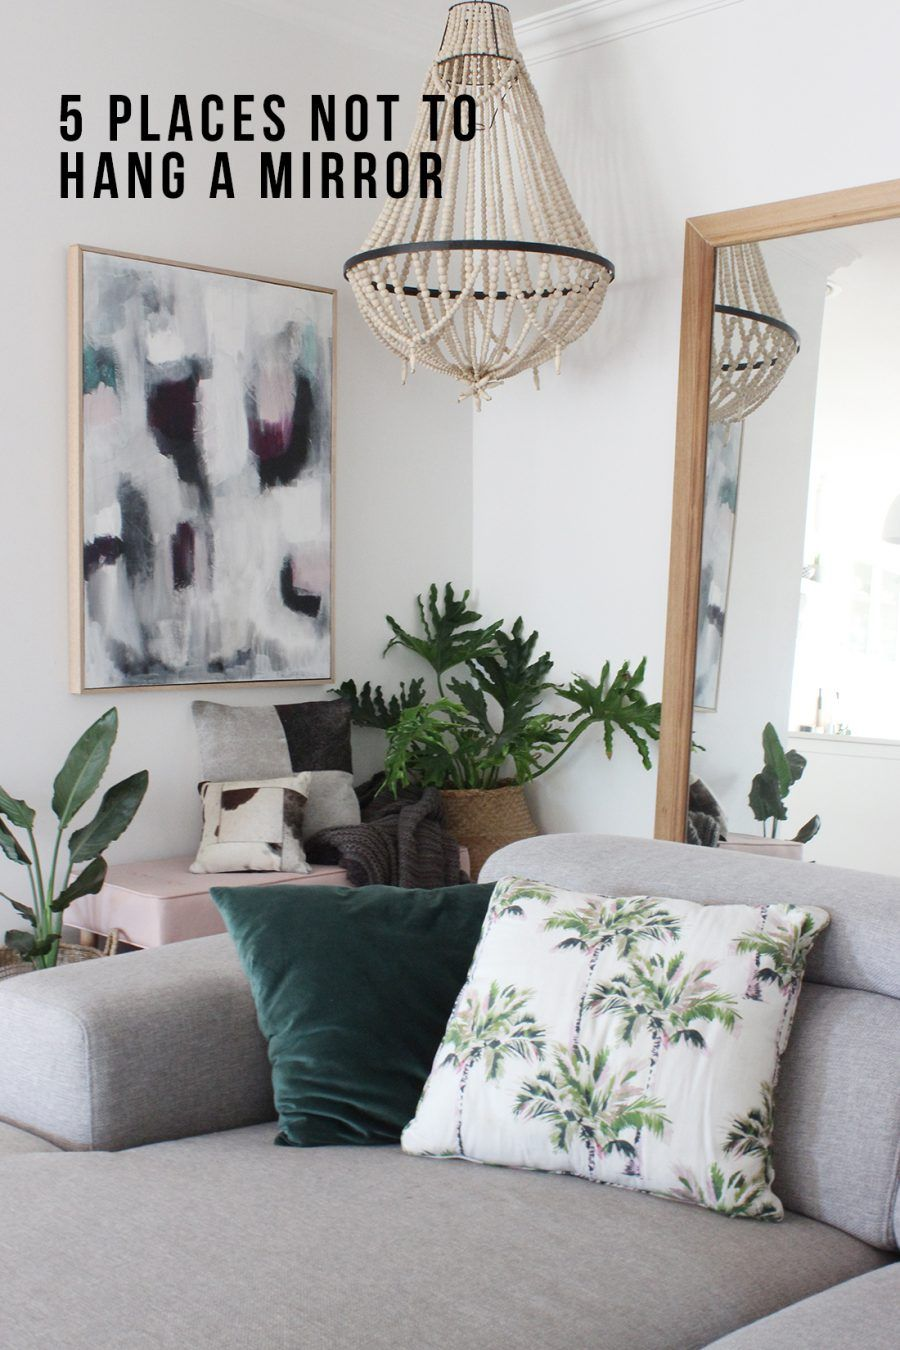 5 places not to hang a mirror Feng shui bedroom